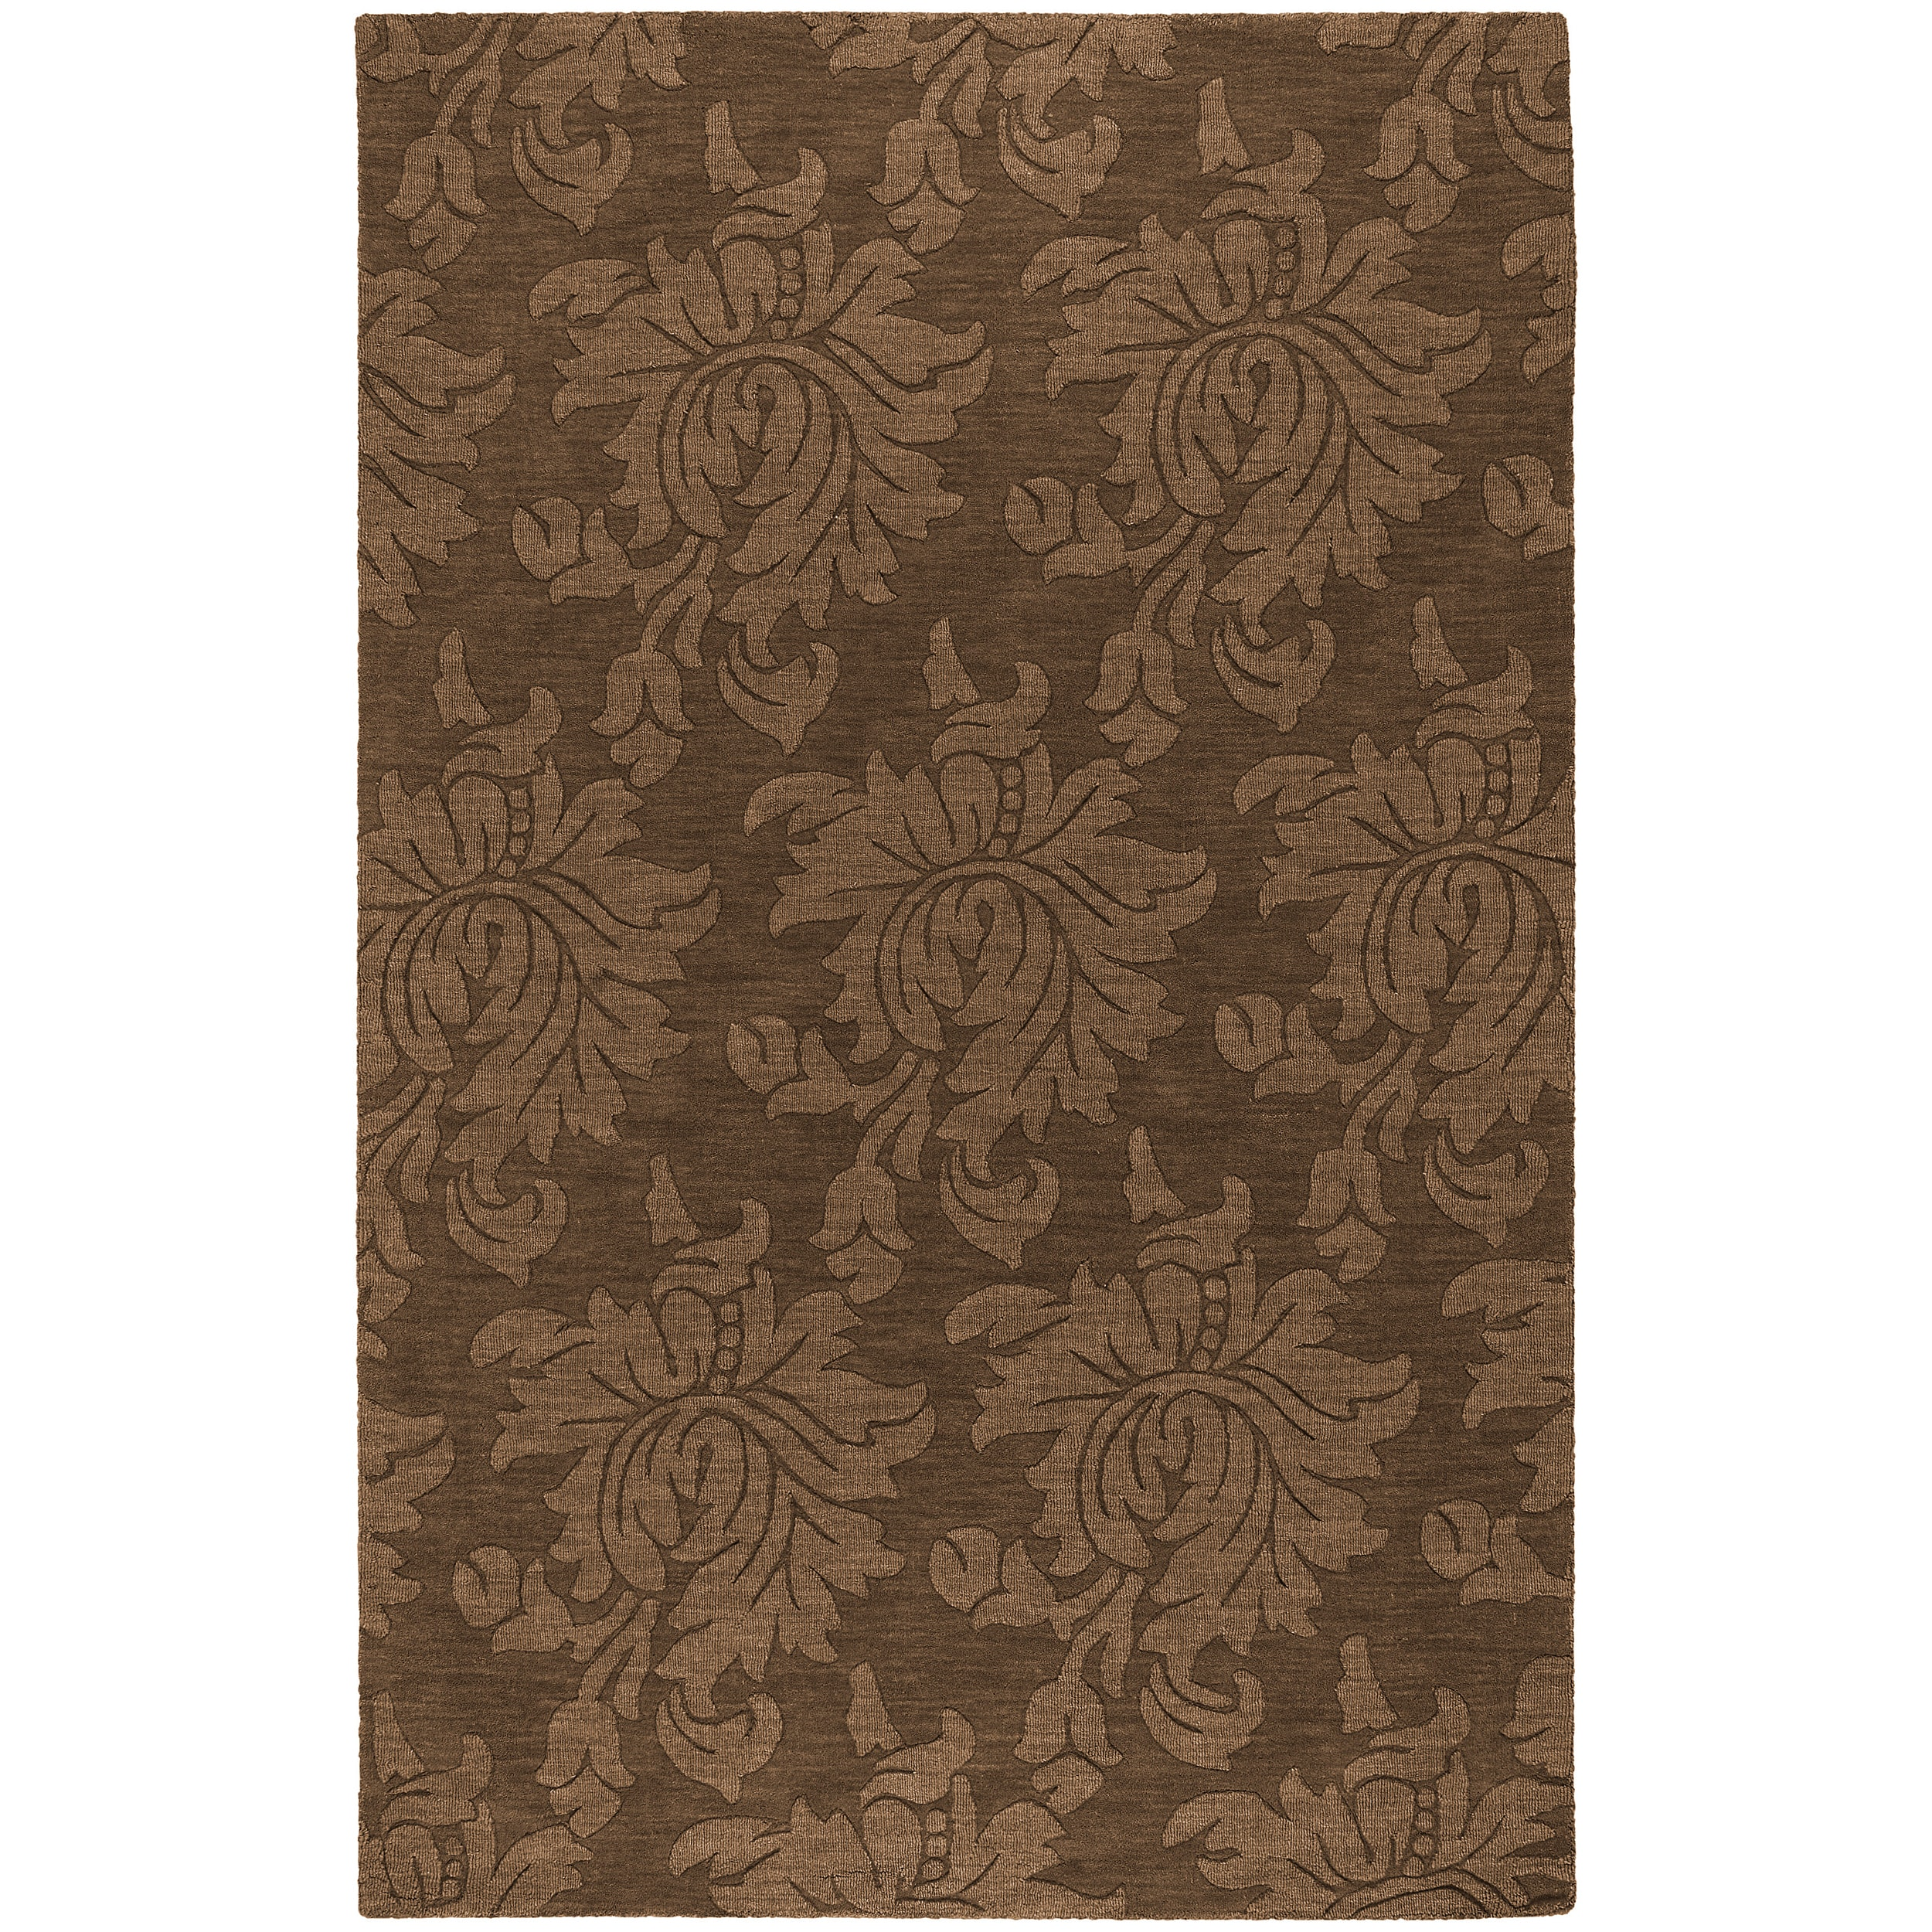 Hand tufted Sophia Brown Wool Area Rug (9' x 12')